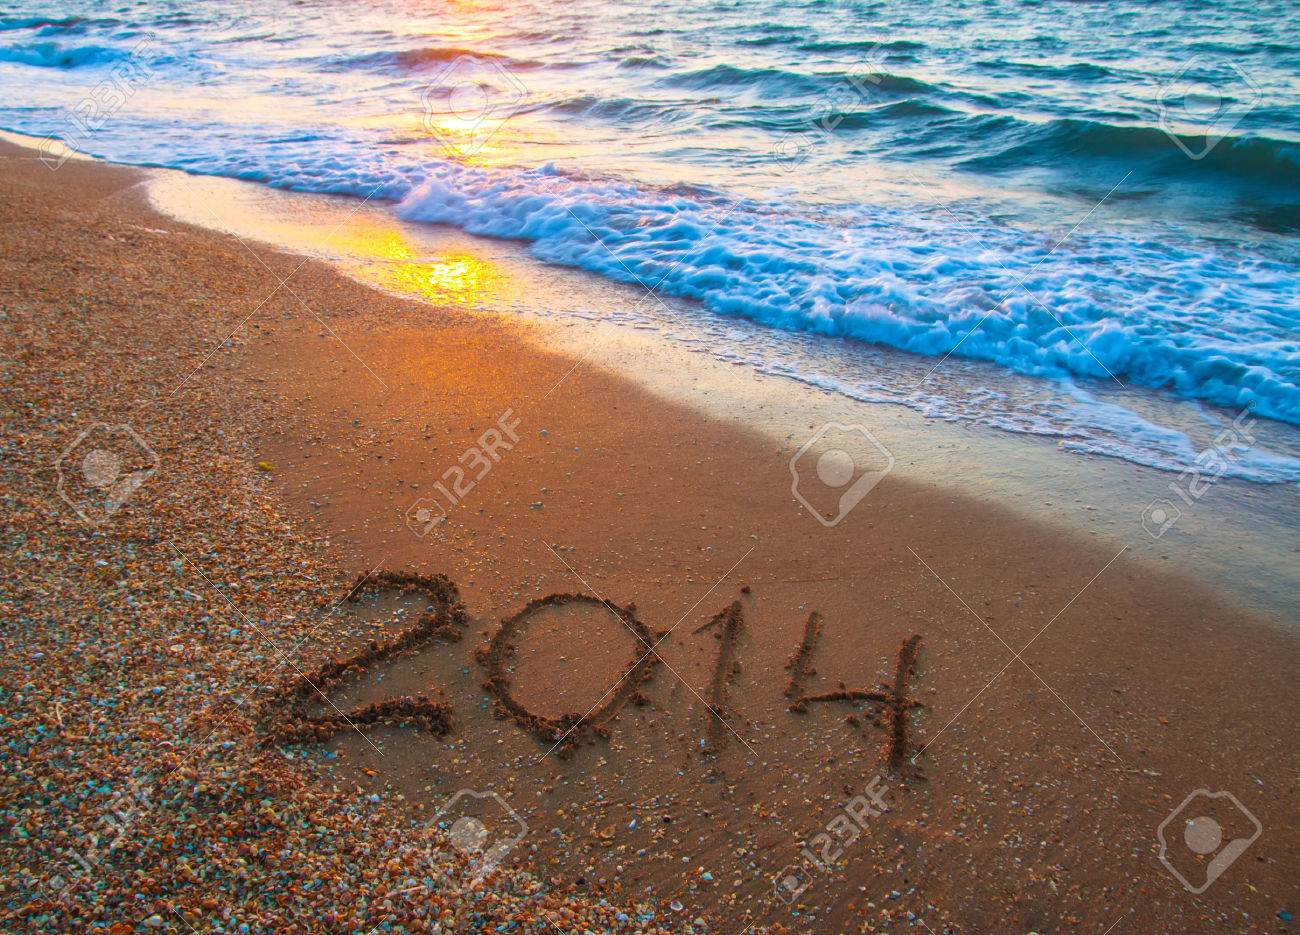 new year 2014 digits on ocean beach sand Stock Photo - 23570326